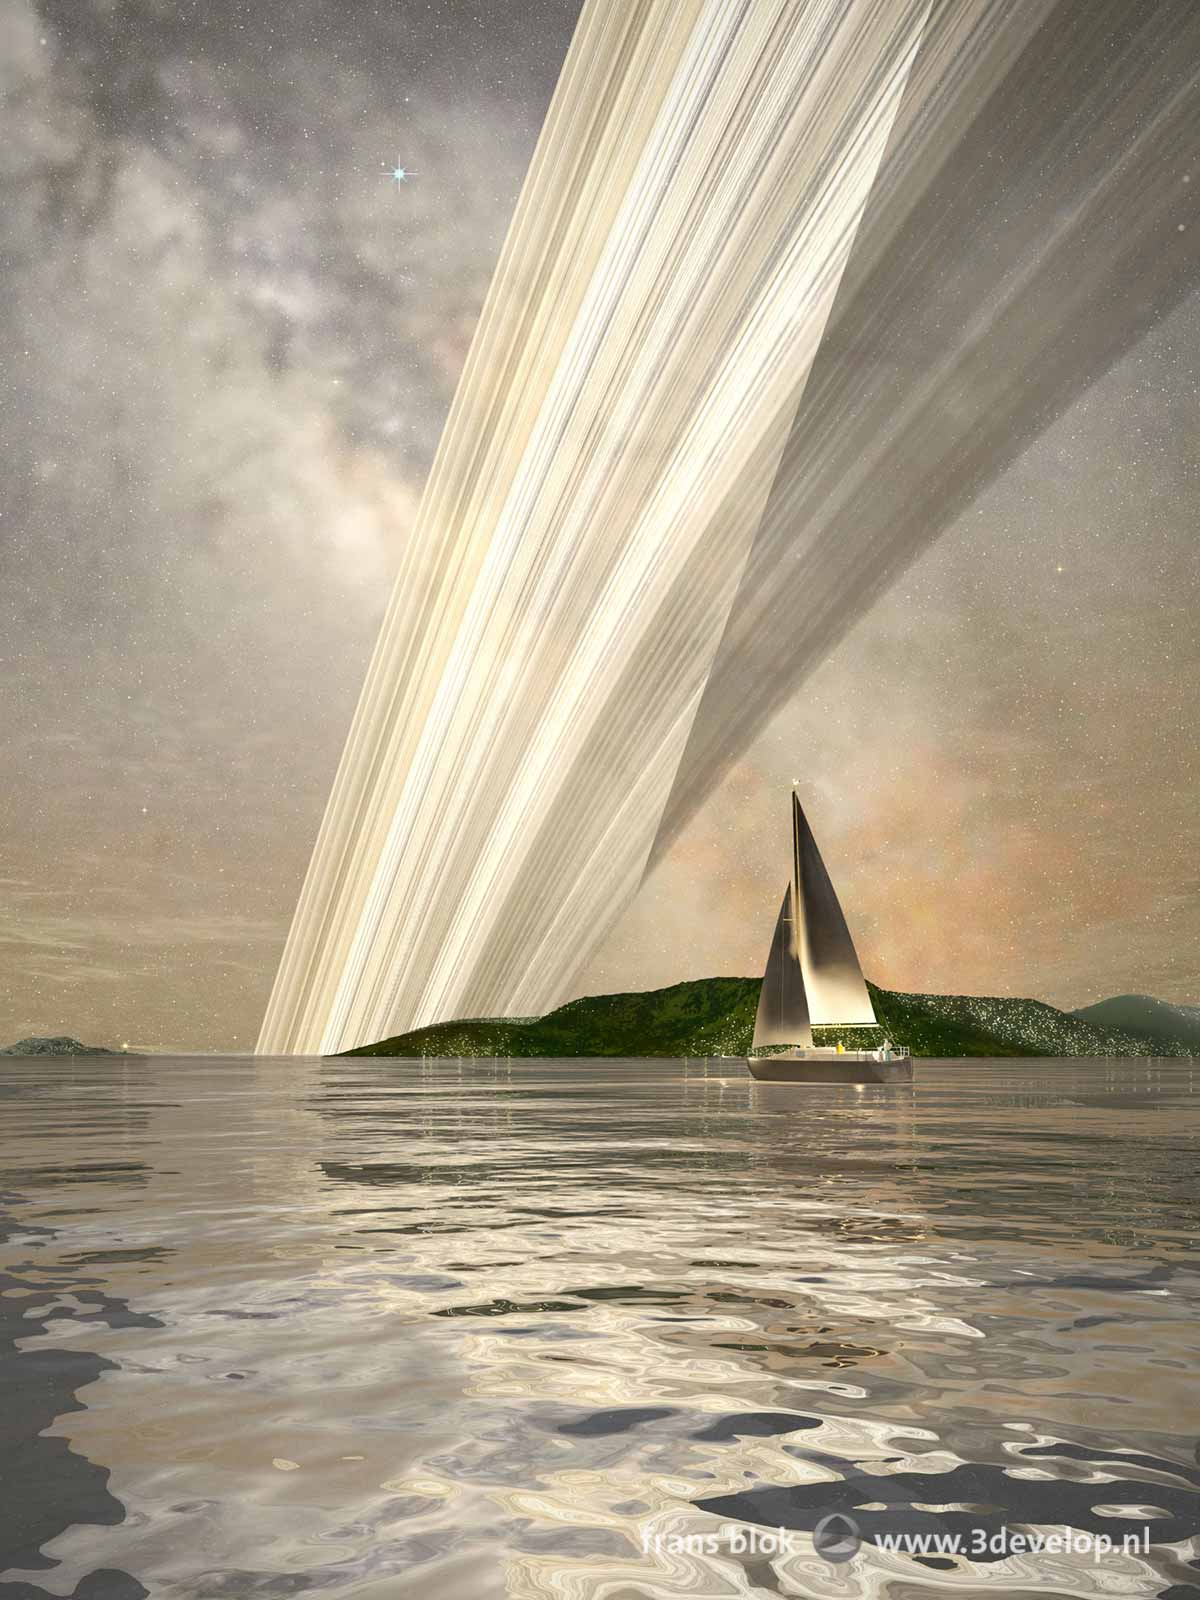 A small yacht is sailing on a calm sea on the terraformed planet Venus by the light of the Rings